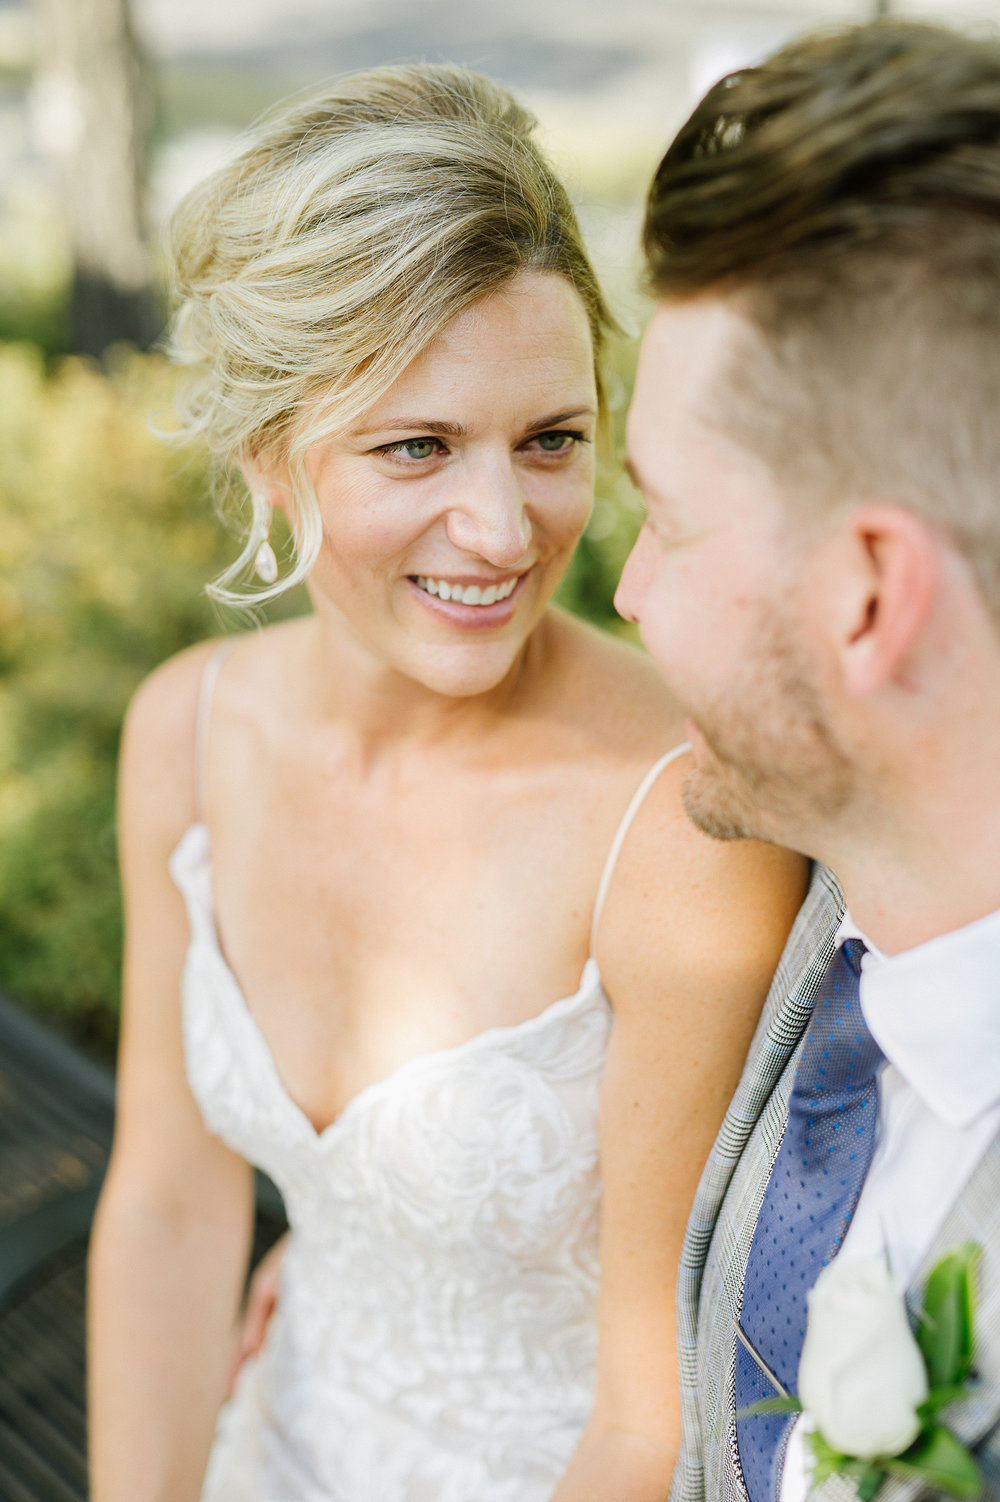 Calgary_Wedding_Photography_Melanie_Jeremy_Elopement_2017 0039.jpg